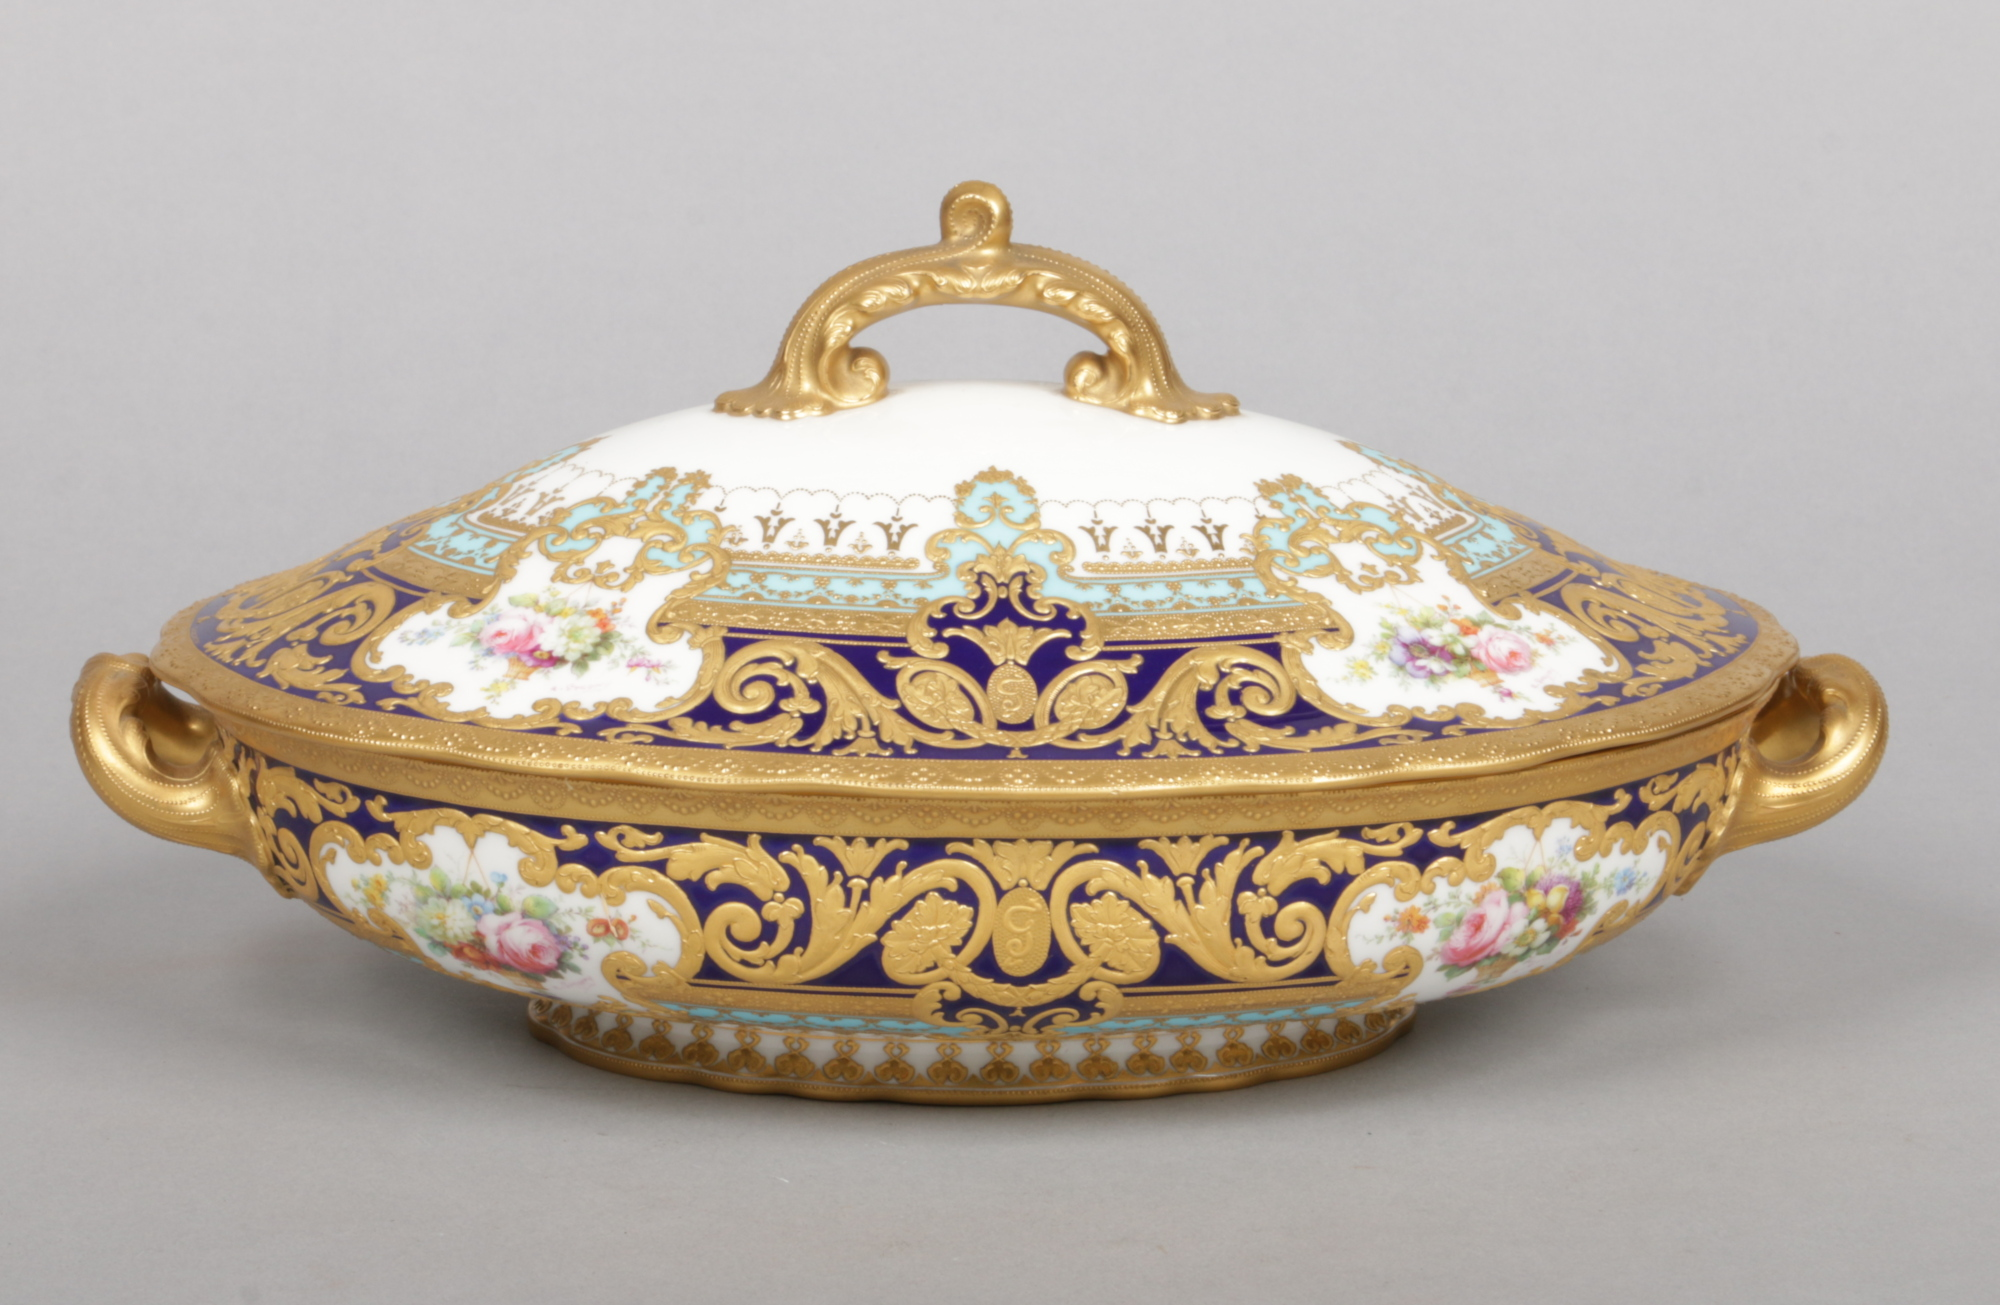 Lot 142 - A fine Royal Crown Derby tureen and cover from the Judge Elbert Henry Gary service. Painted by